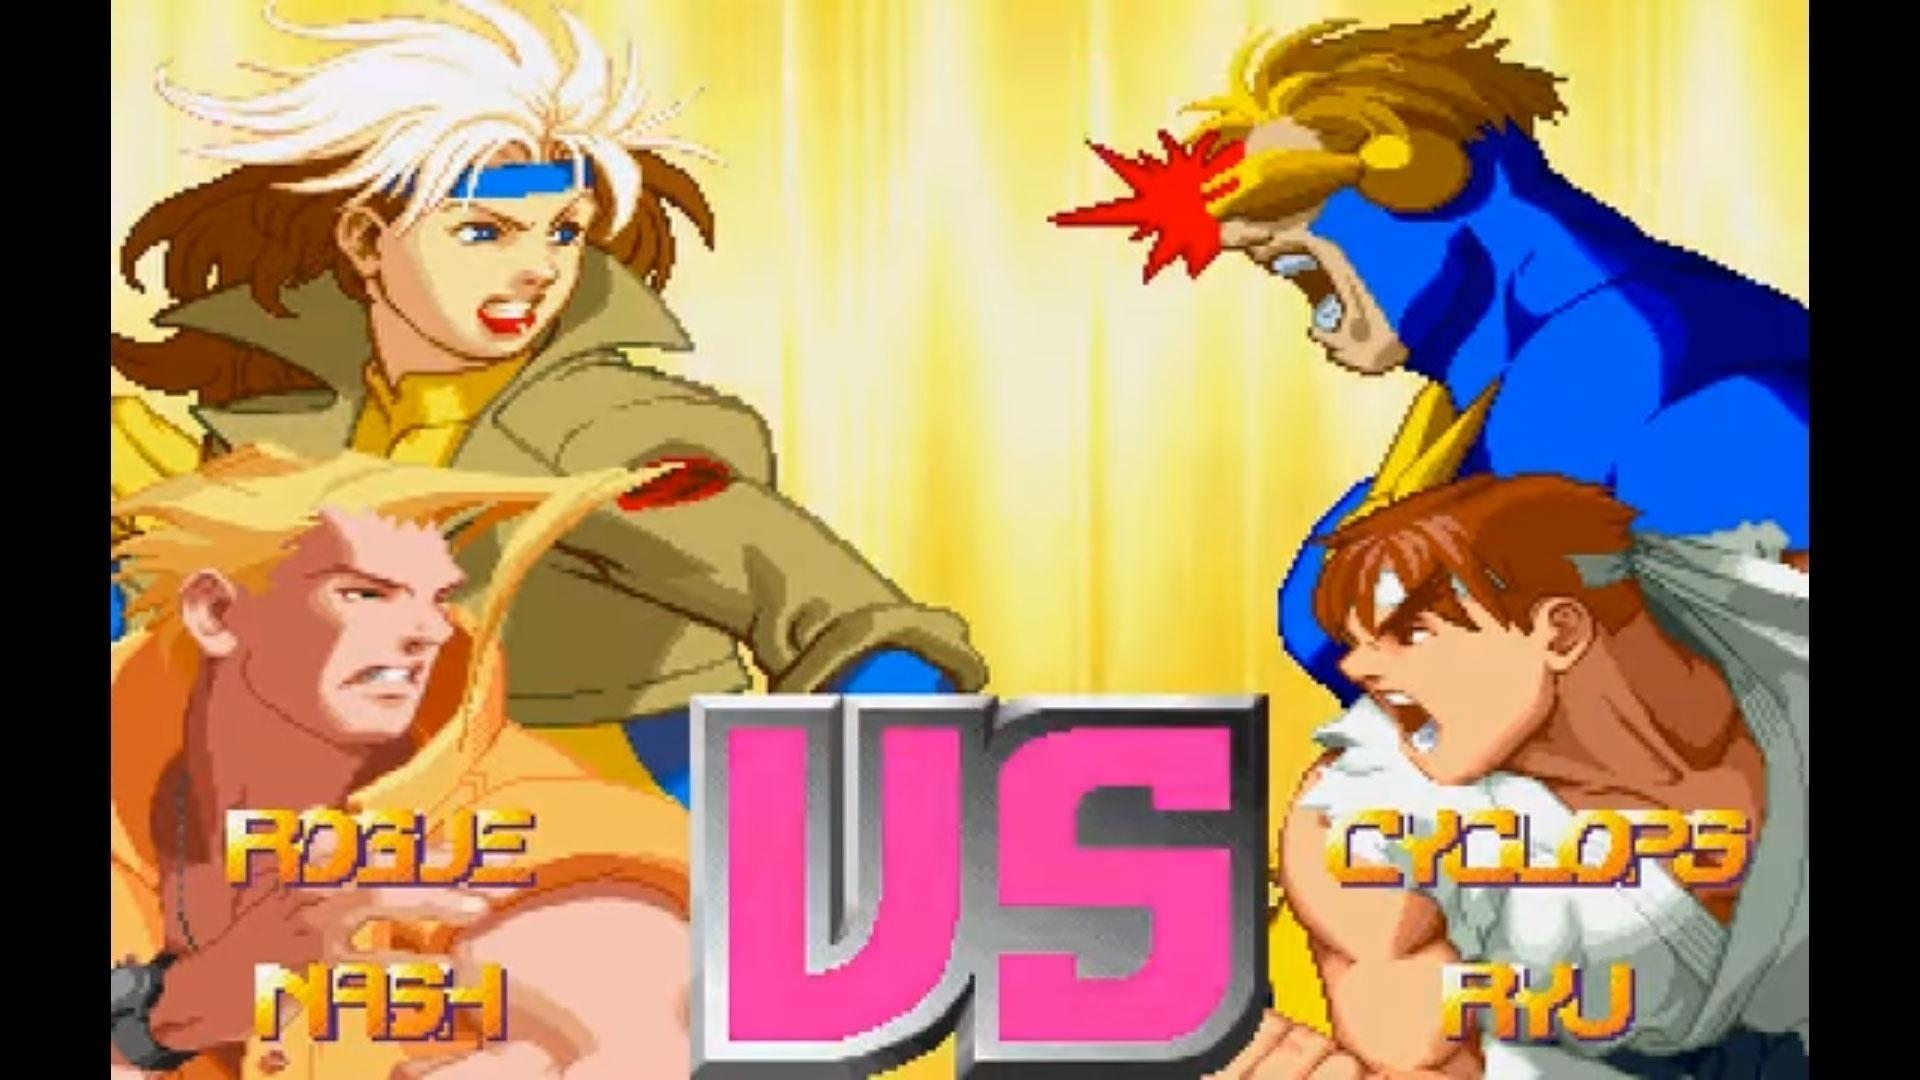 [Image: x-men-vs-street-fighter-1574091164019_v2_1920x1.jpg]